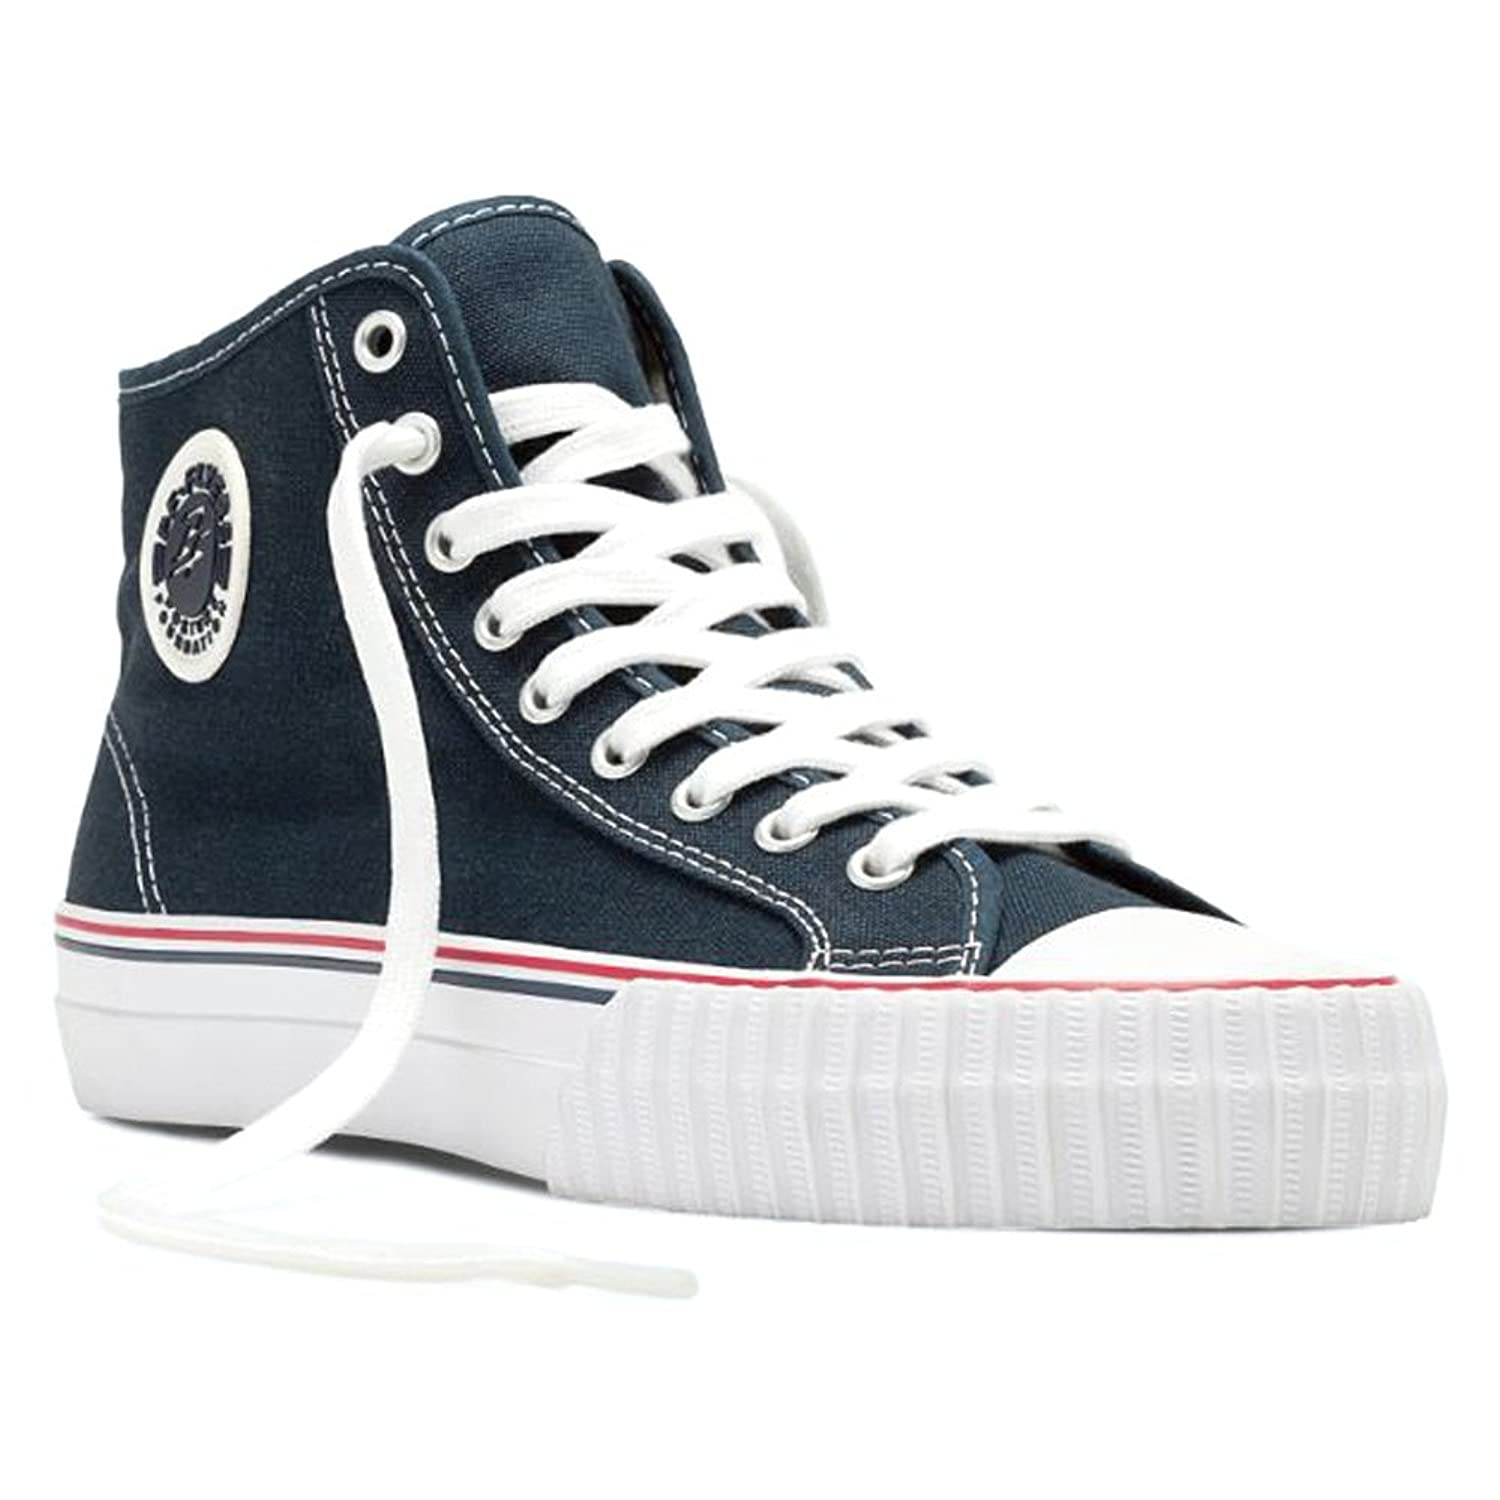 784eacd7f1f06 pf flyers center hi canvas holiday releases